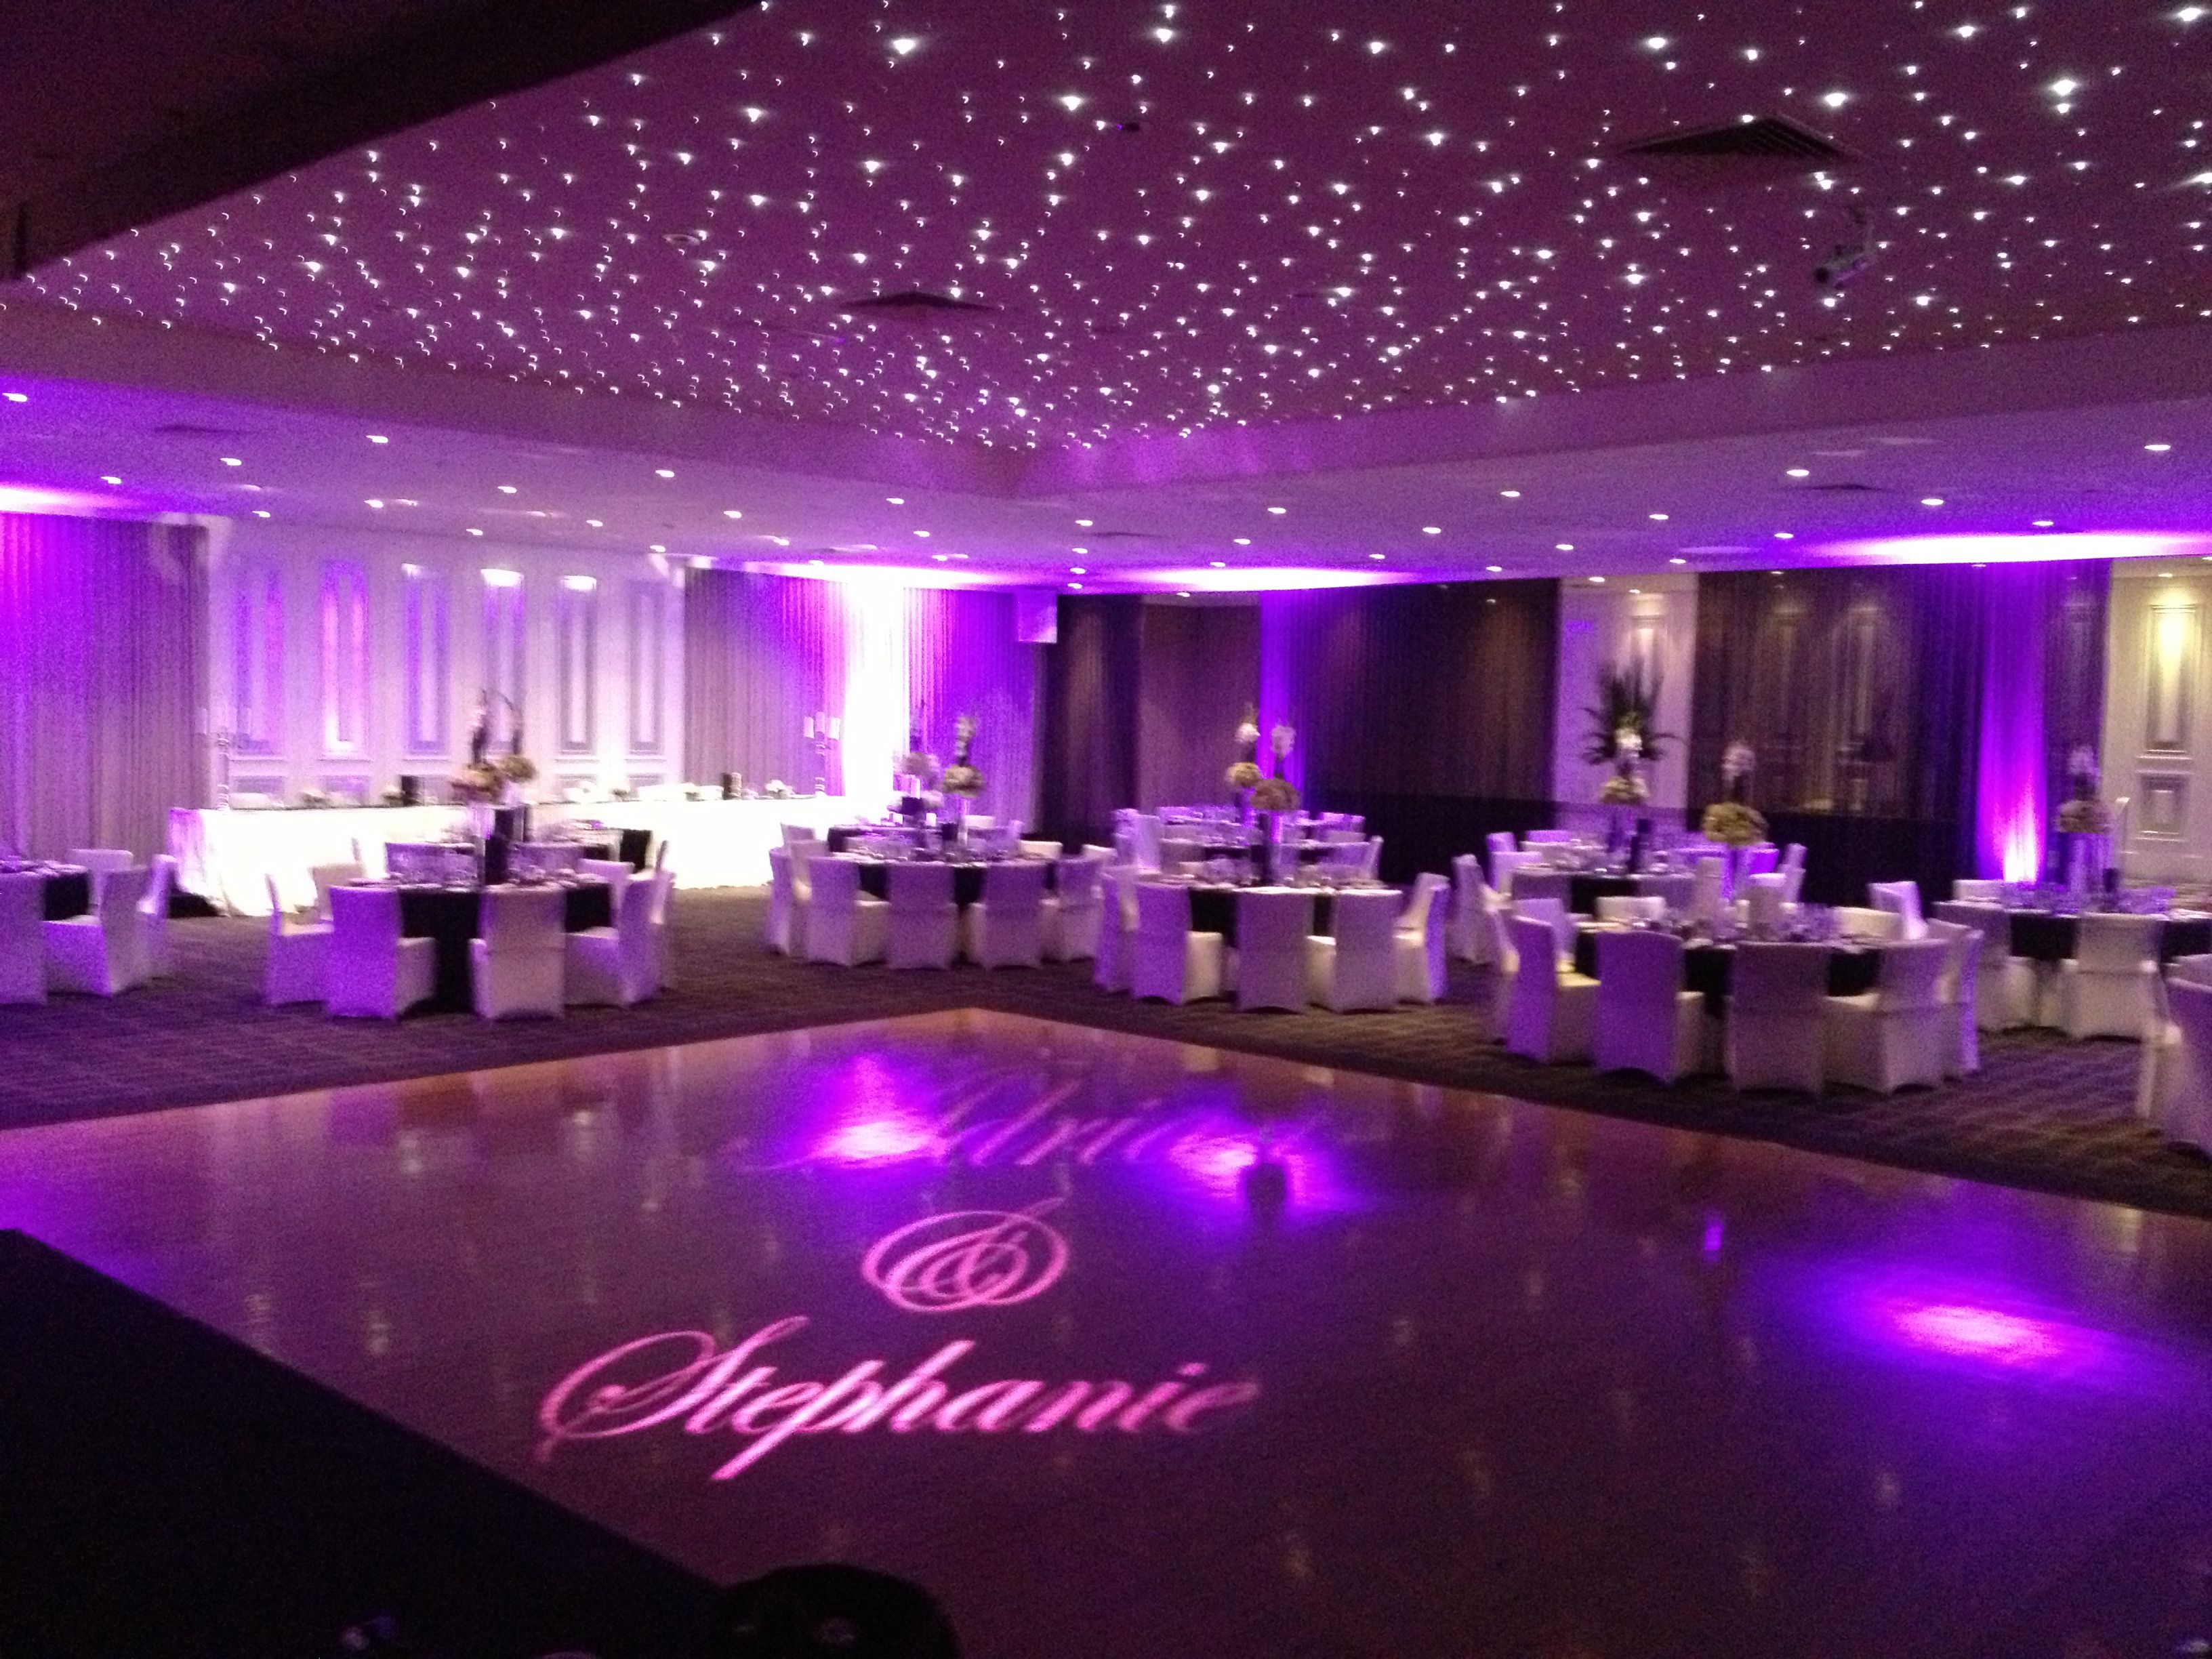 A starry night can come in any colour you want with our personalized projections and up lighting